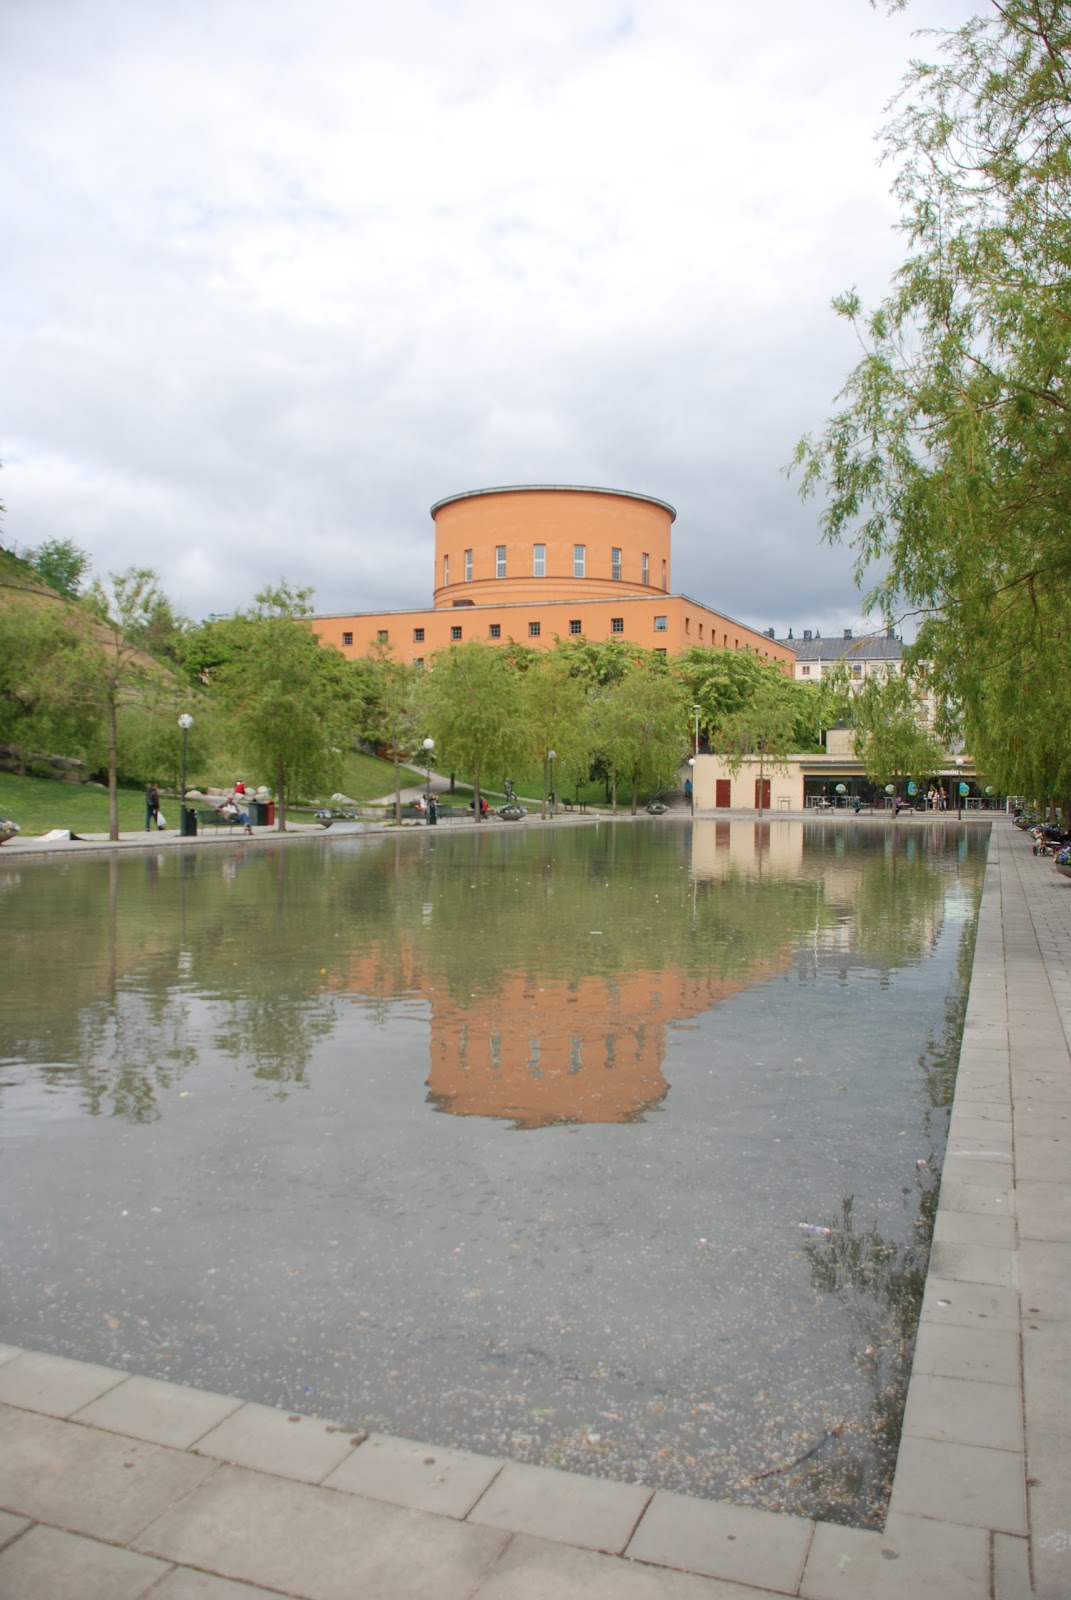 Stockholm Public Library with reflecting pool - Gunnar Asplund